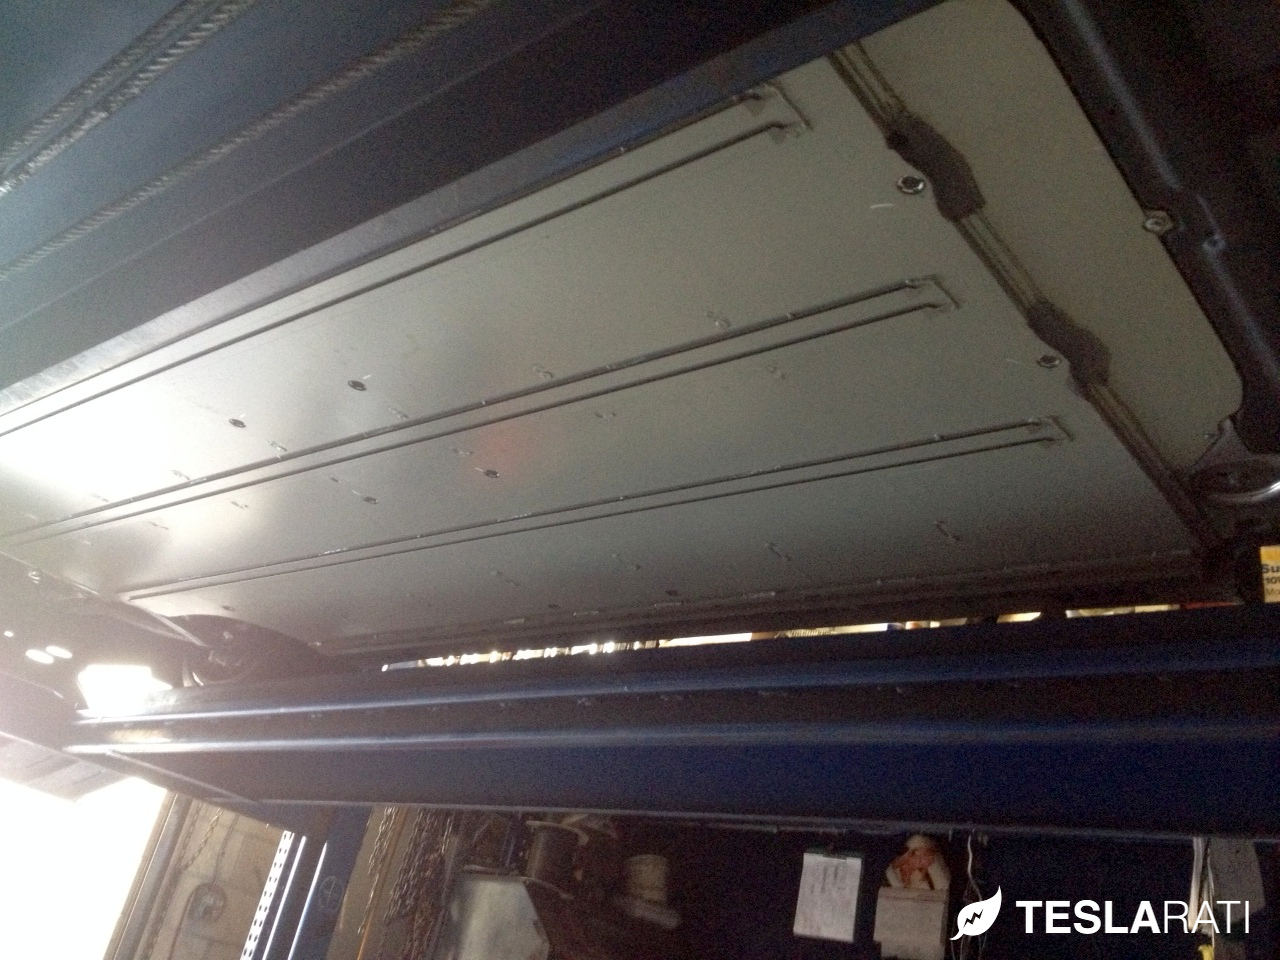 Teslarati-Model-S-Battery-Shield-RD